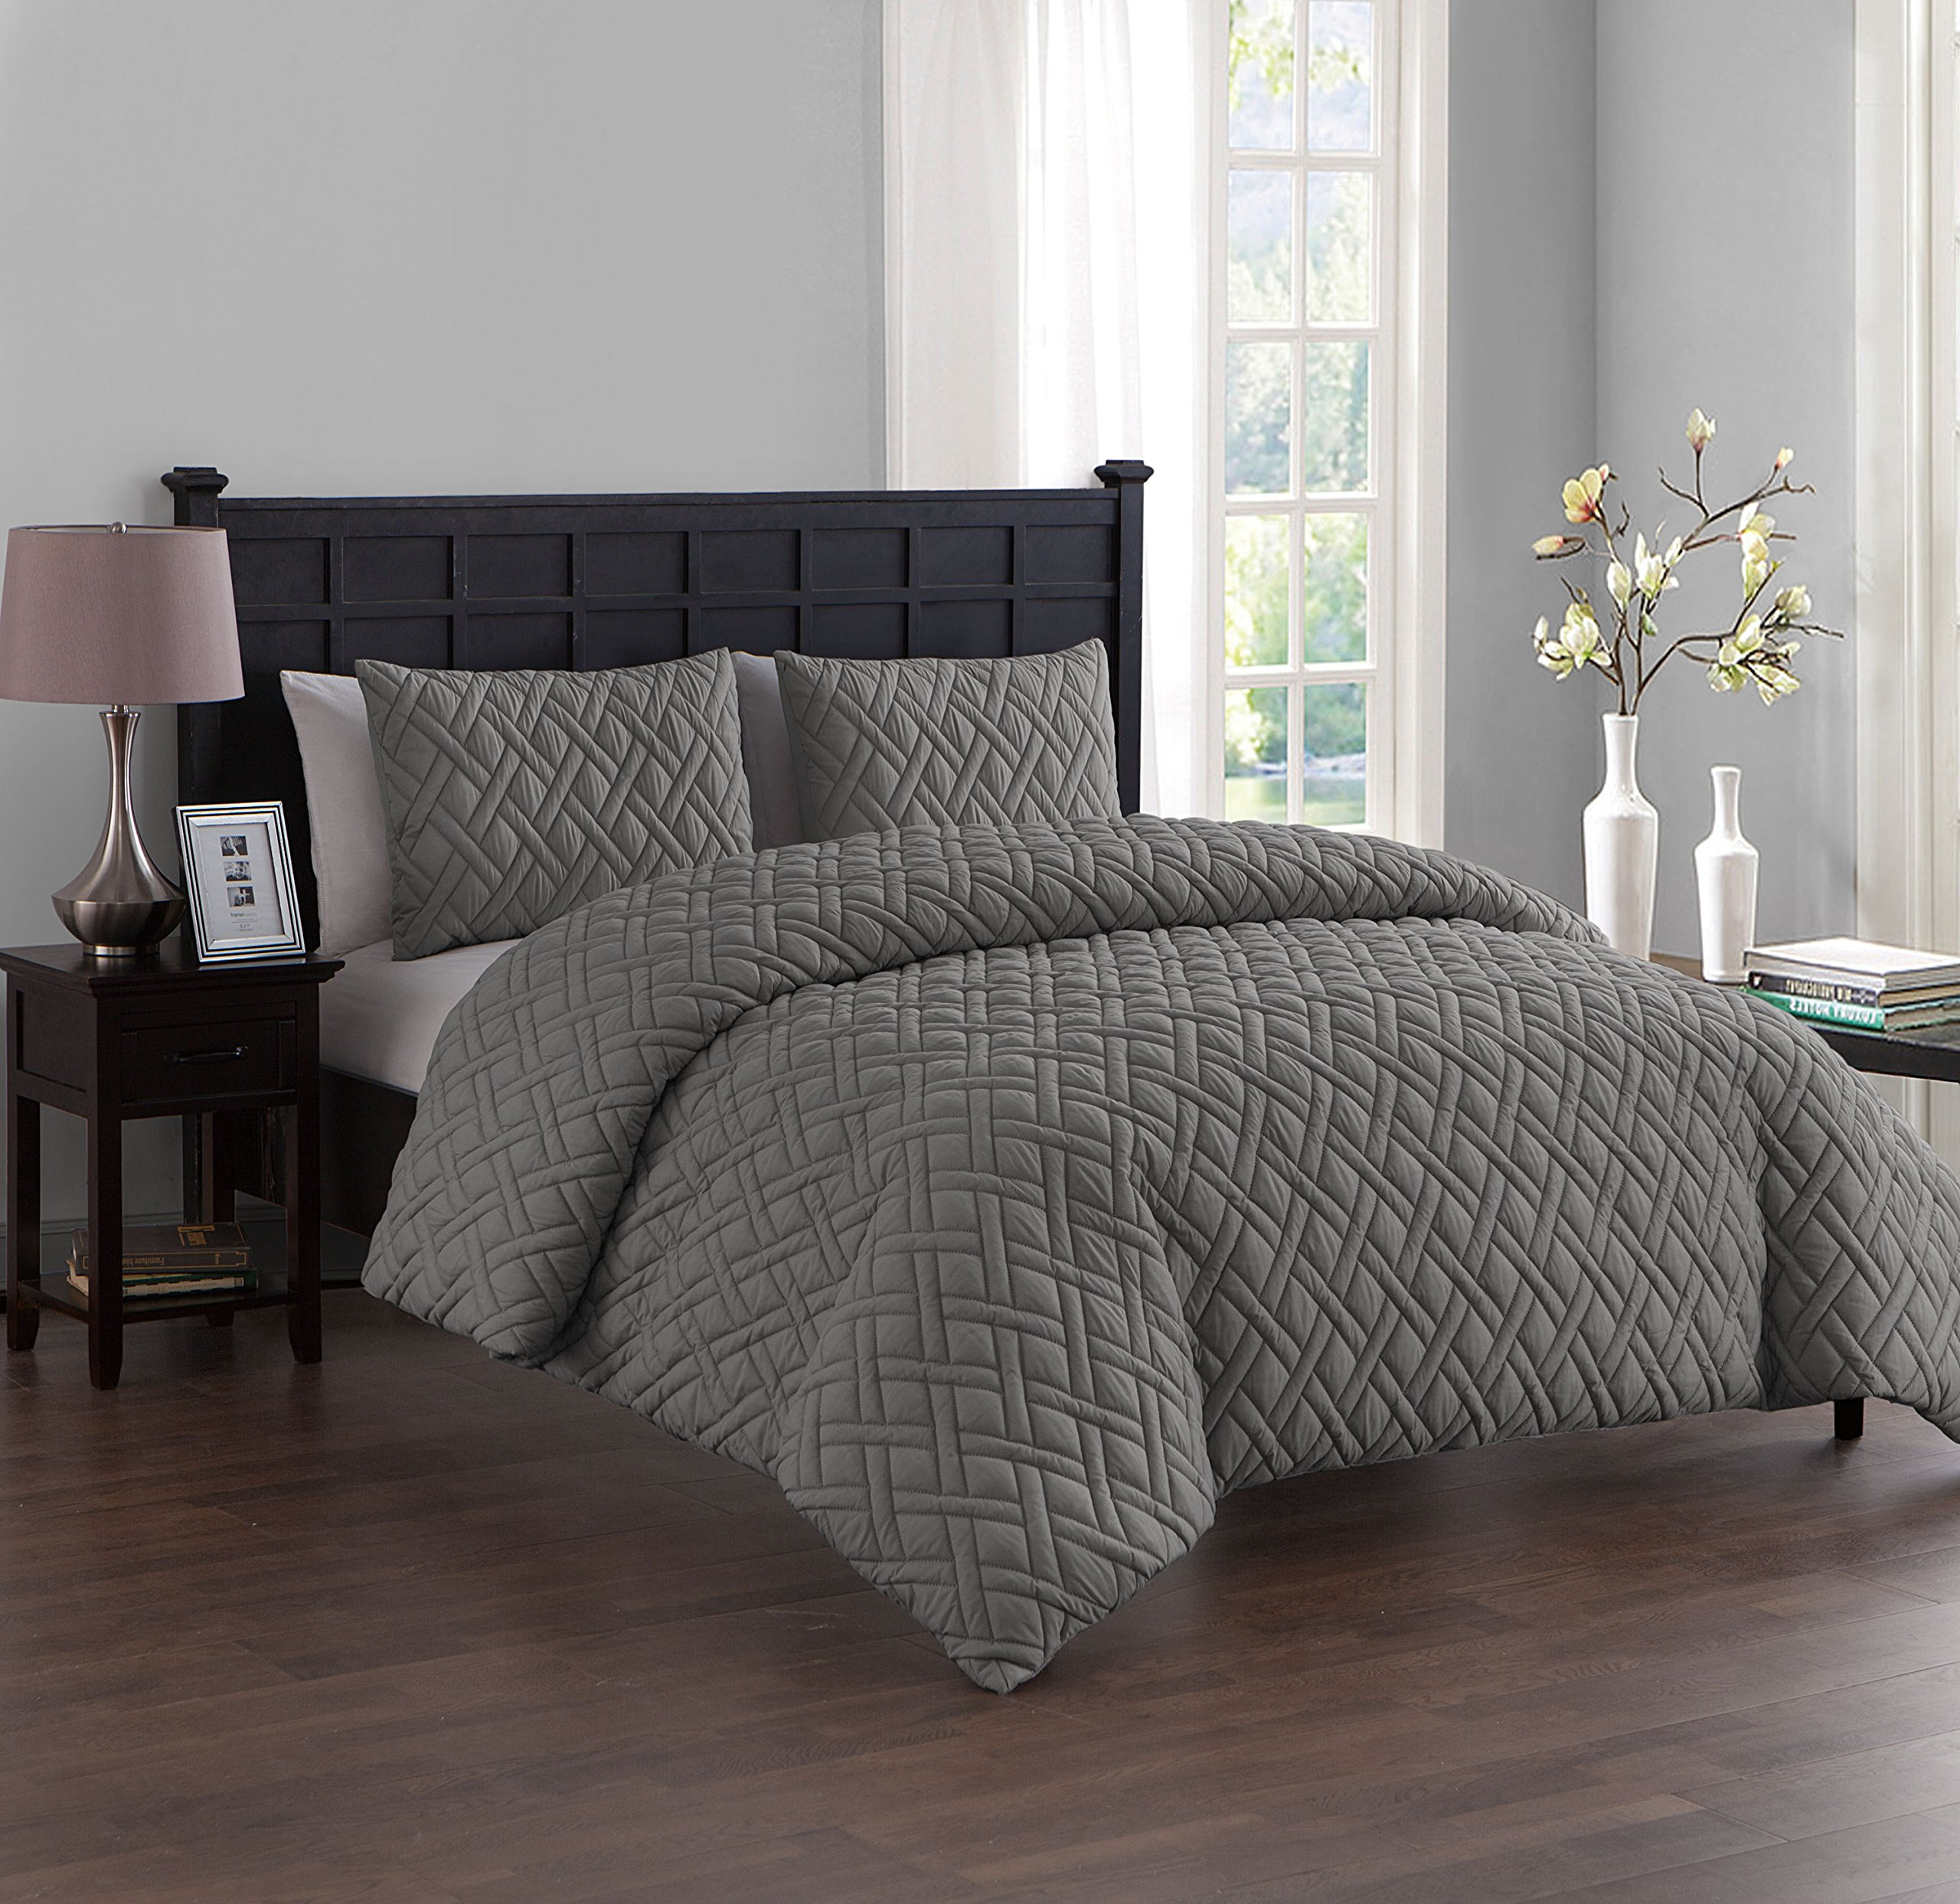 Blue, Twin 68/×90 M/&Meagle 3 Pieces Solid Duvet Cover Textured Set with Zipper Closure,100/% Washed Microfiber Seersucker Fabric,Luxury Hotel Quality Bedding